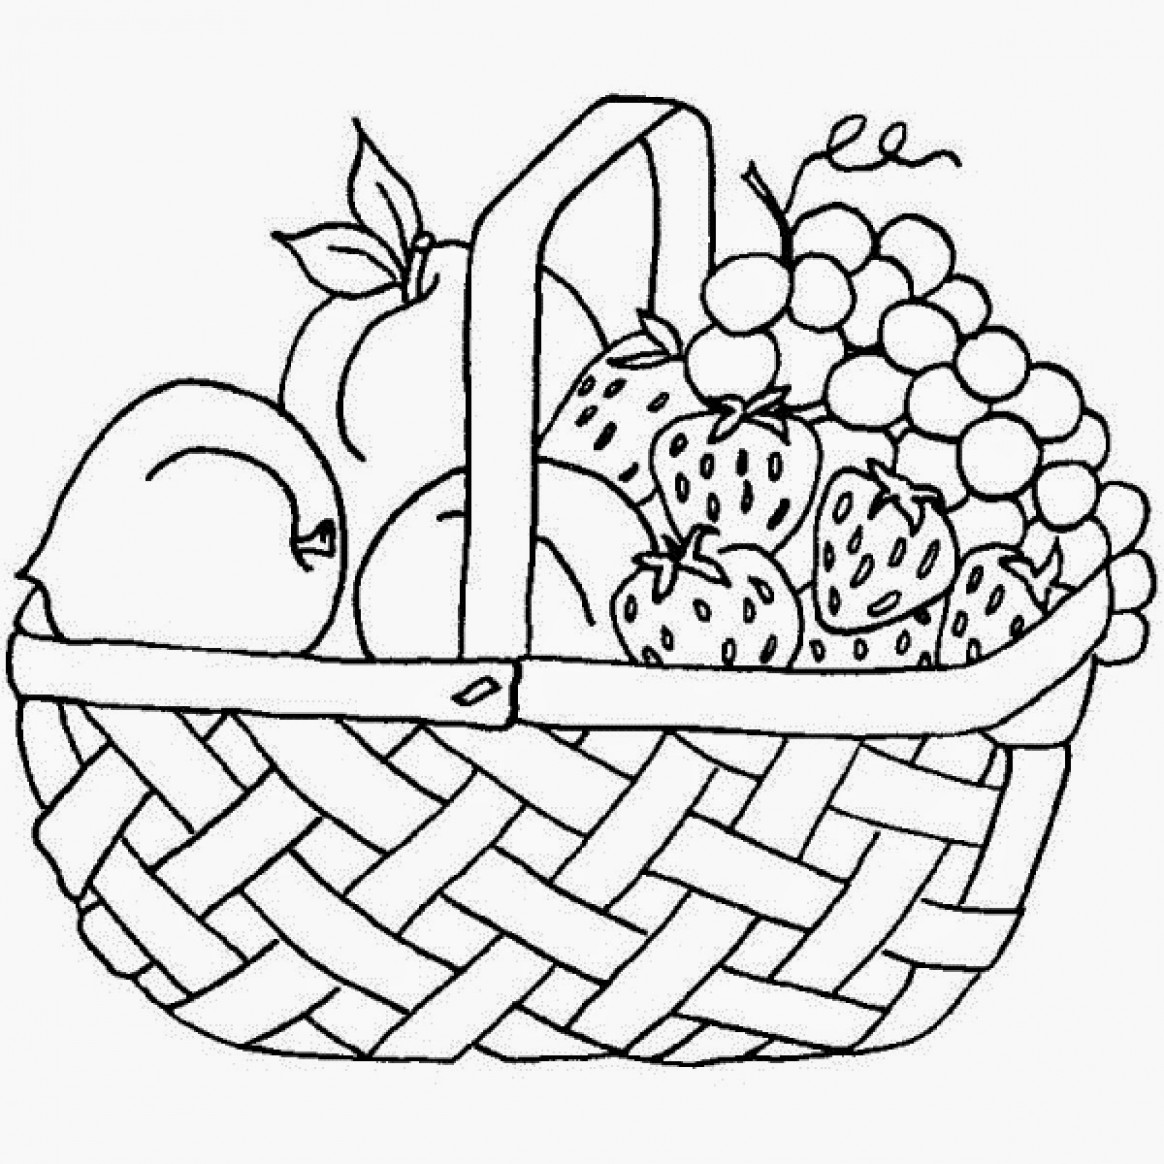 how to draw fruit in a bowl fruit bowl drawing at getdrawings free download in to bowl draw fruit a how